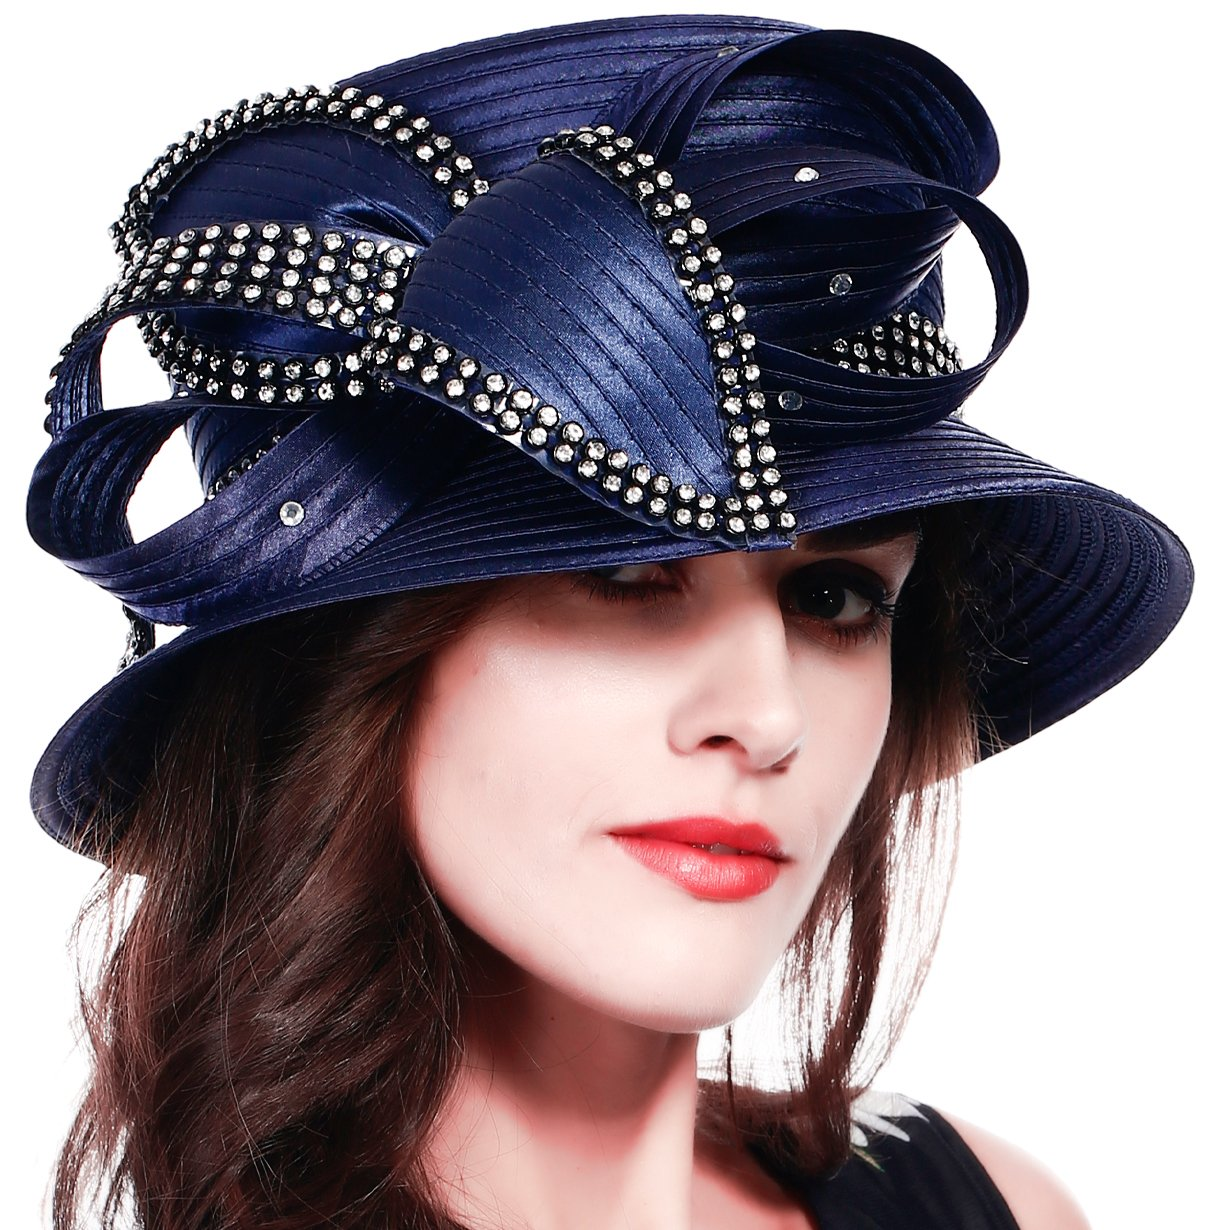 FORBUSITE Stripe Ribbon Asymmetry Church Derby Dress Hat SD707 (Navy) by FORBUSITE (Image #2)